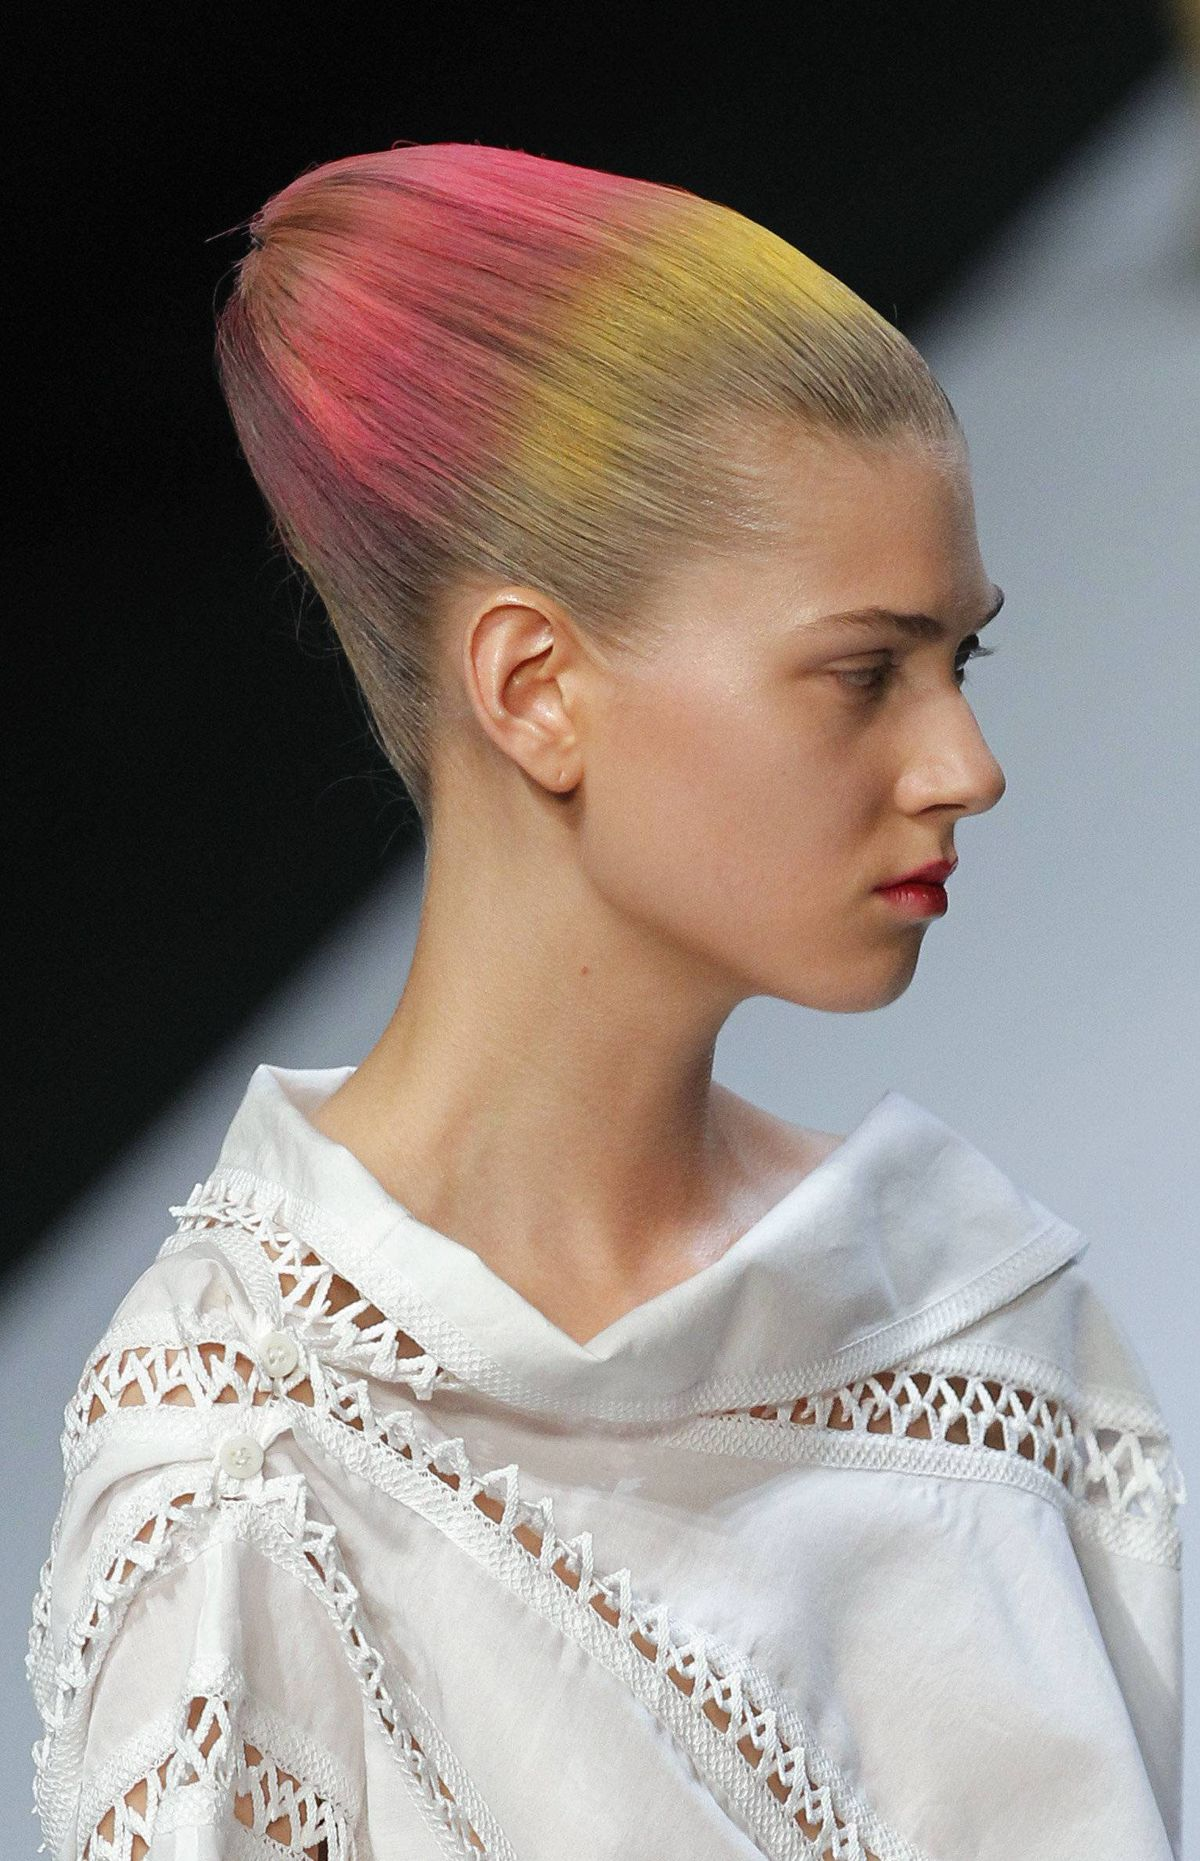 Issey Miyake Spring/Summer 2012 ready-to-wear collection The biggest risk of a stunning hair statement is that it detracts from the clothes. This was the case at Issey Miyake, now designed by Yoshiyuki Miyamae.